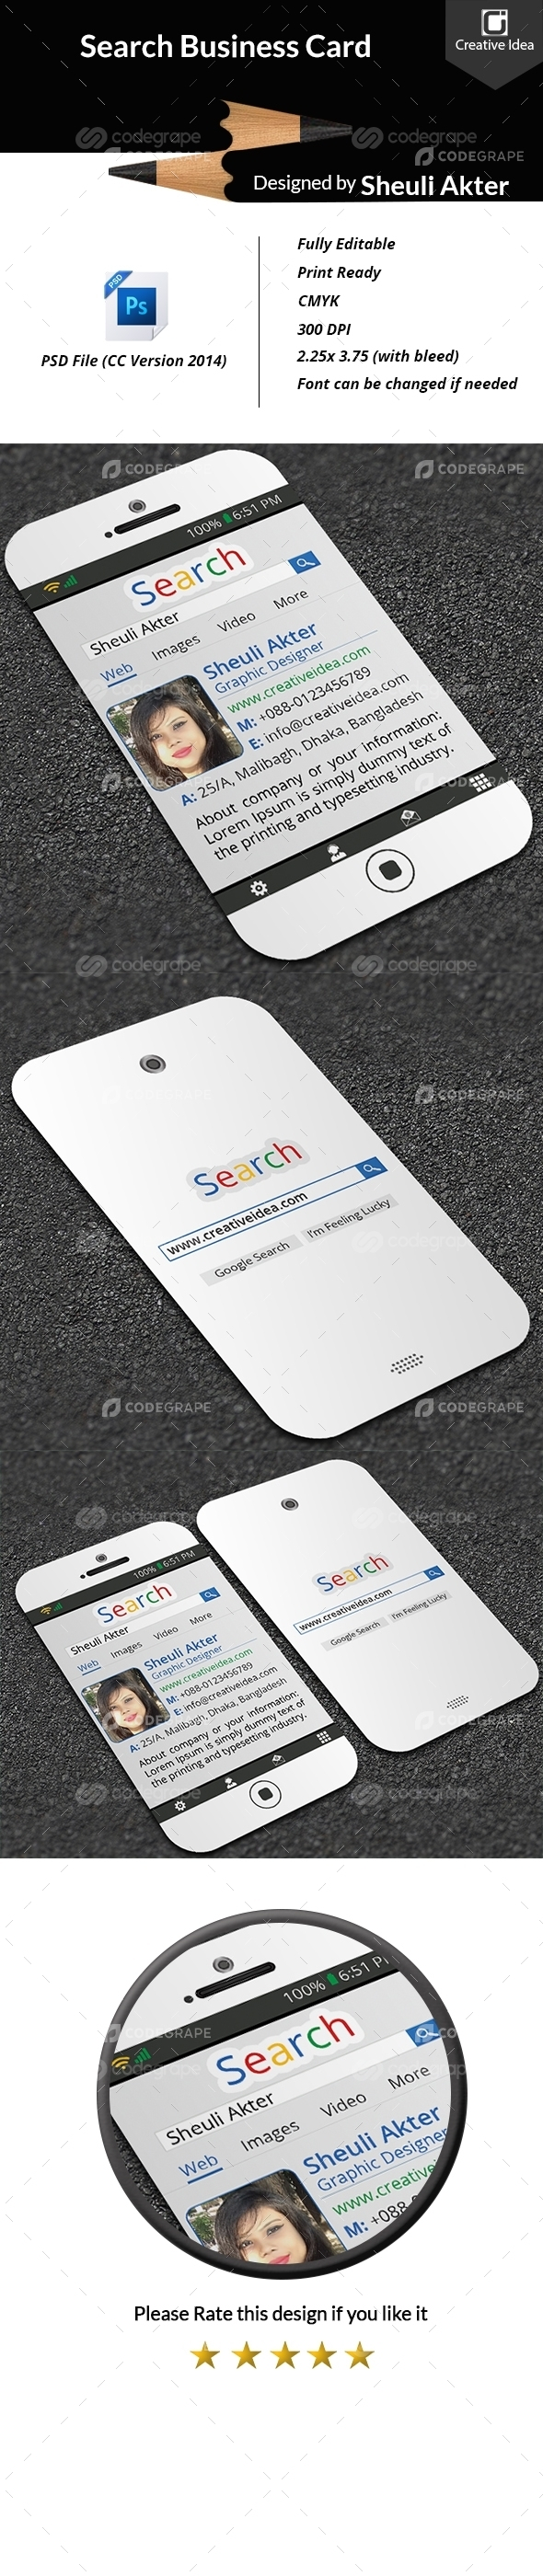 Search Style Business Card